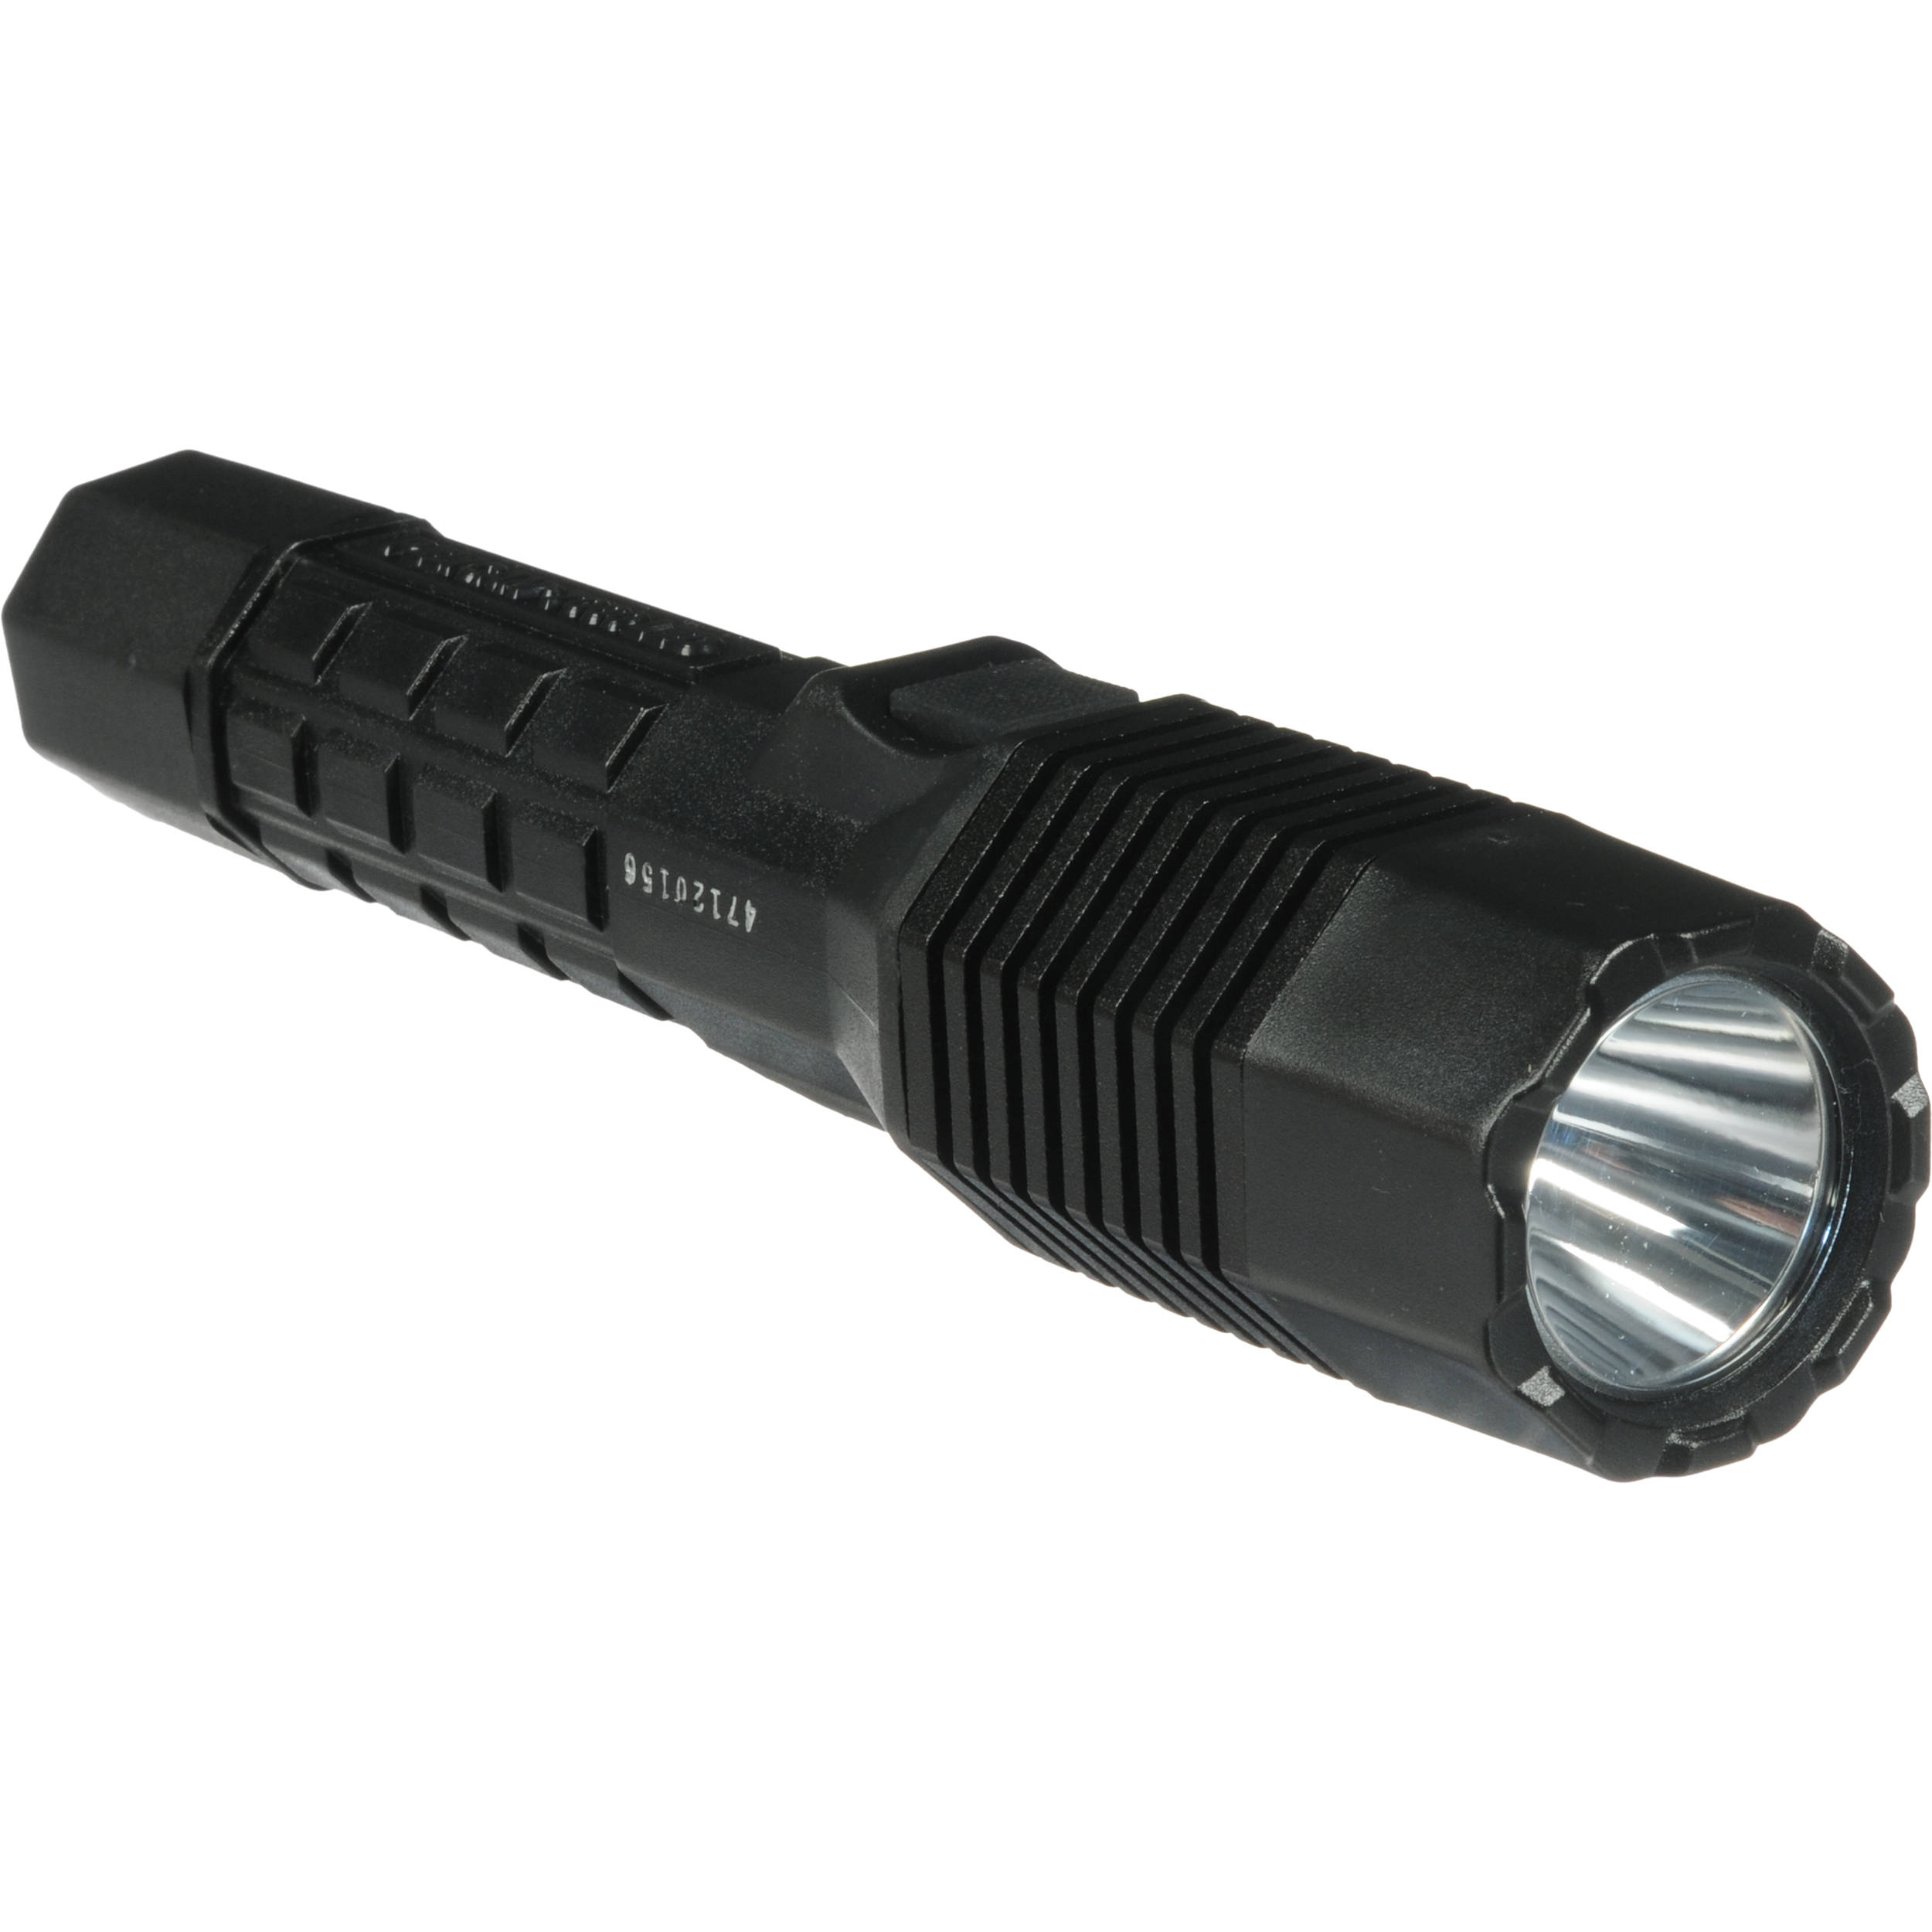 Pelican Pelican 7060 Rechargeable Led Flashlight 7060 041 110